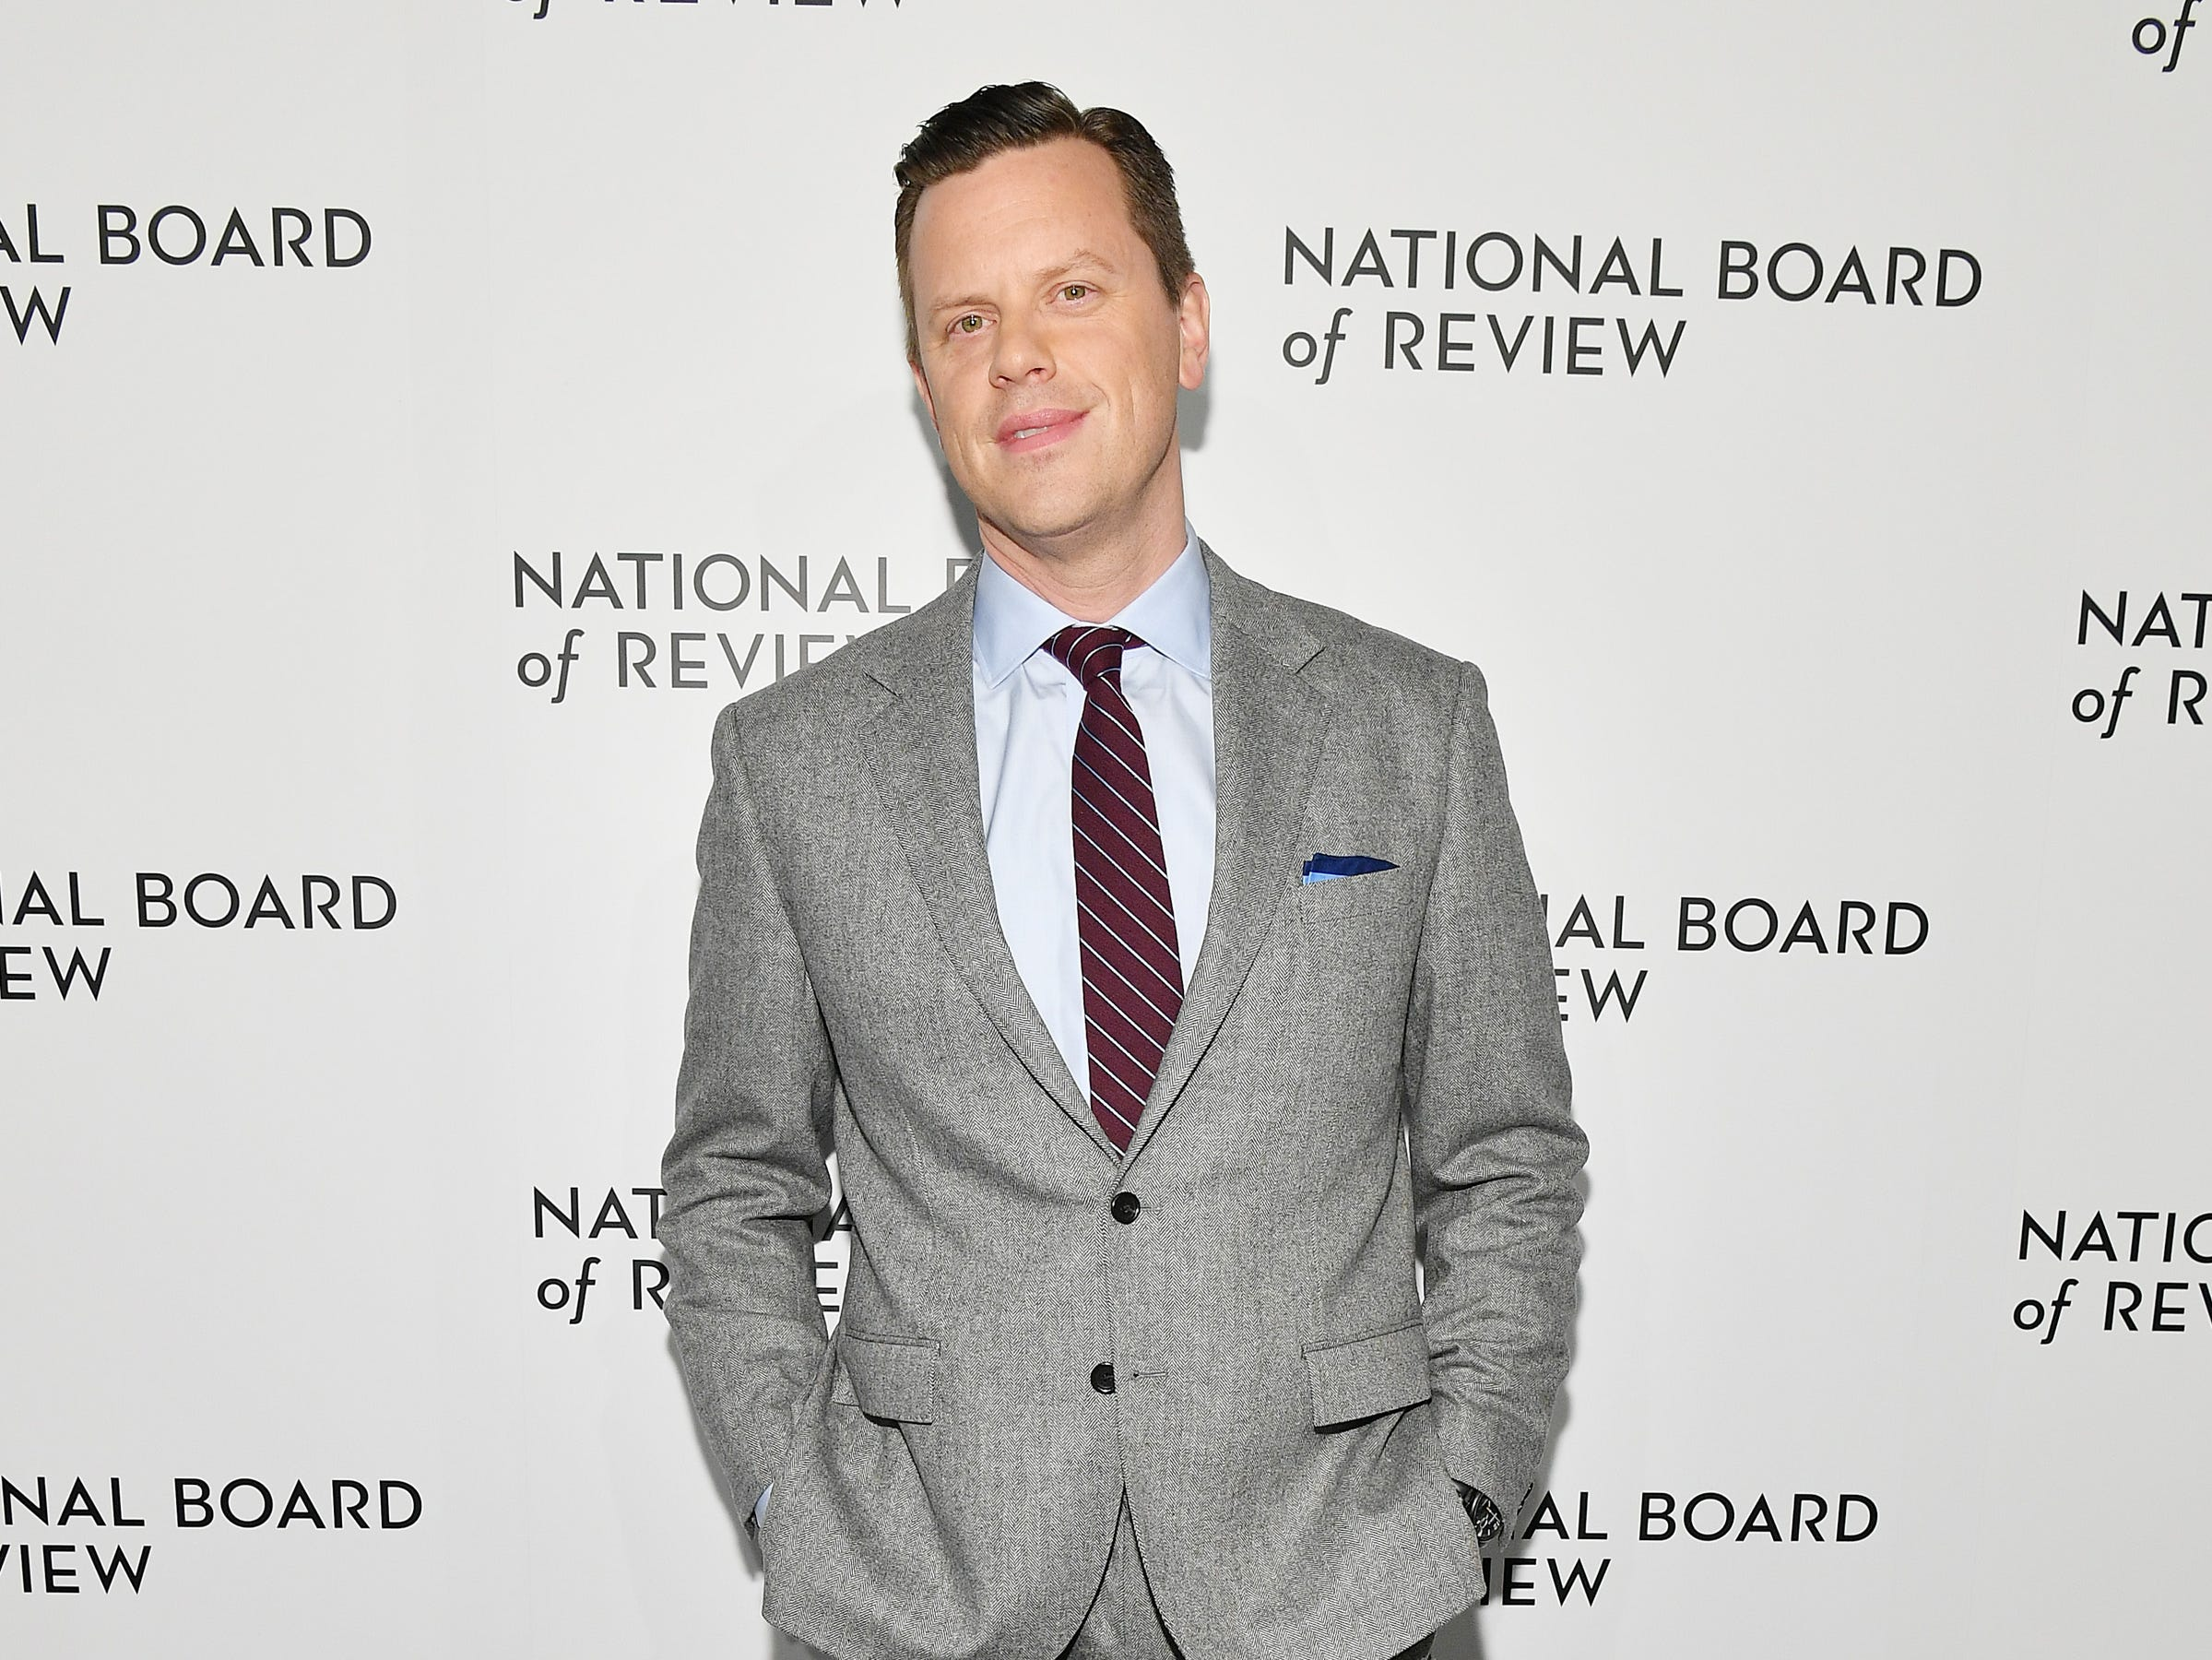 NEW YORK, NY - JANUARY 08: Willie Geist attends The National Board of Review Annual Awards Gala at Cipriani 42nd Street on January 8, 2019 in New York City.  (Photo by Dia Dipasupil/Getty Images for National Board of Review) ORG XMIT: 775259363 ORIG FILE ID: 1079454498